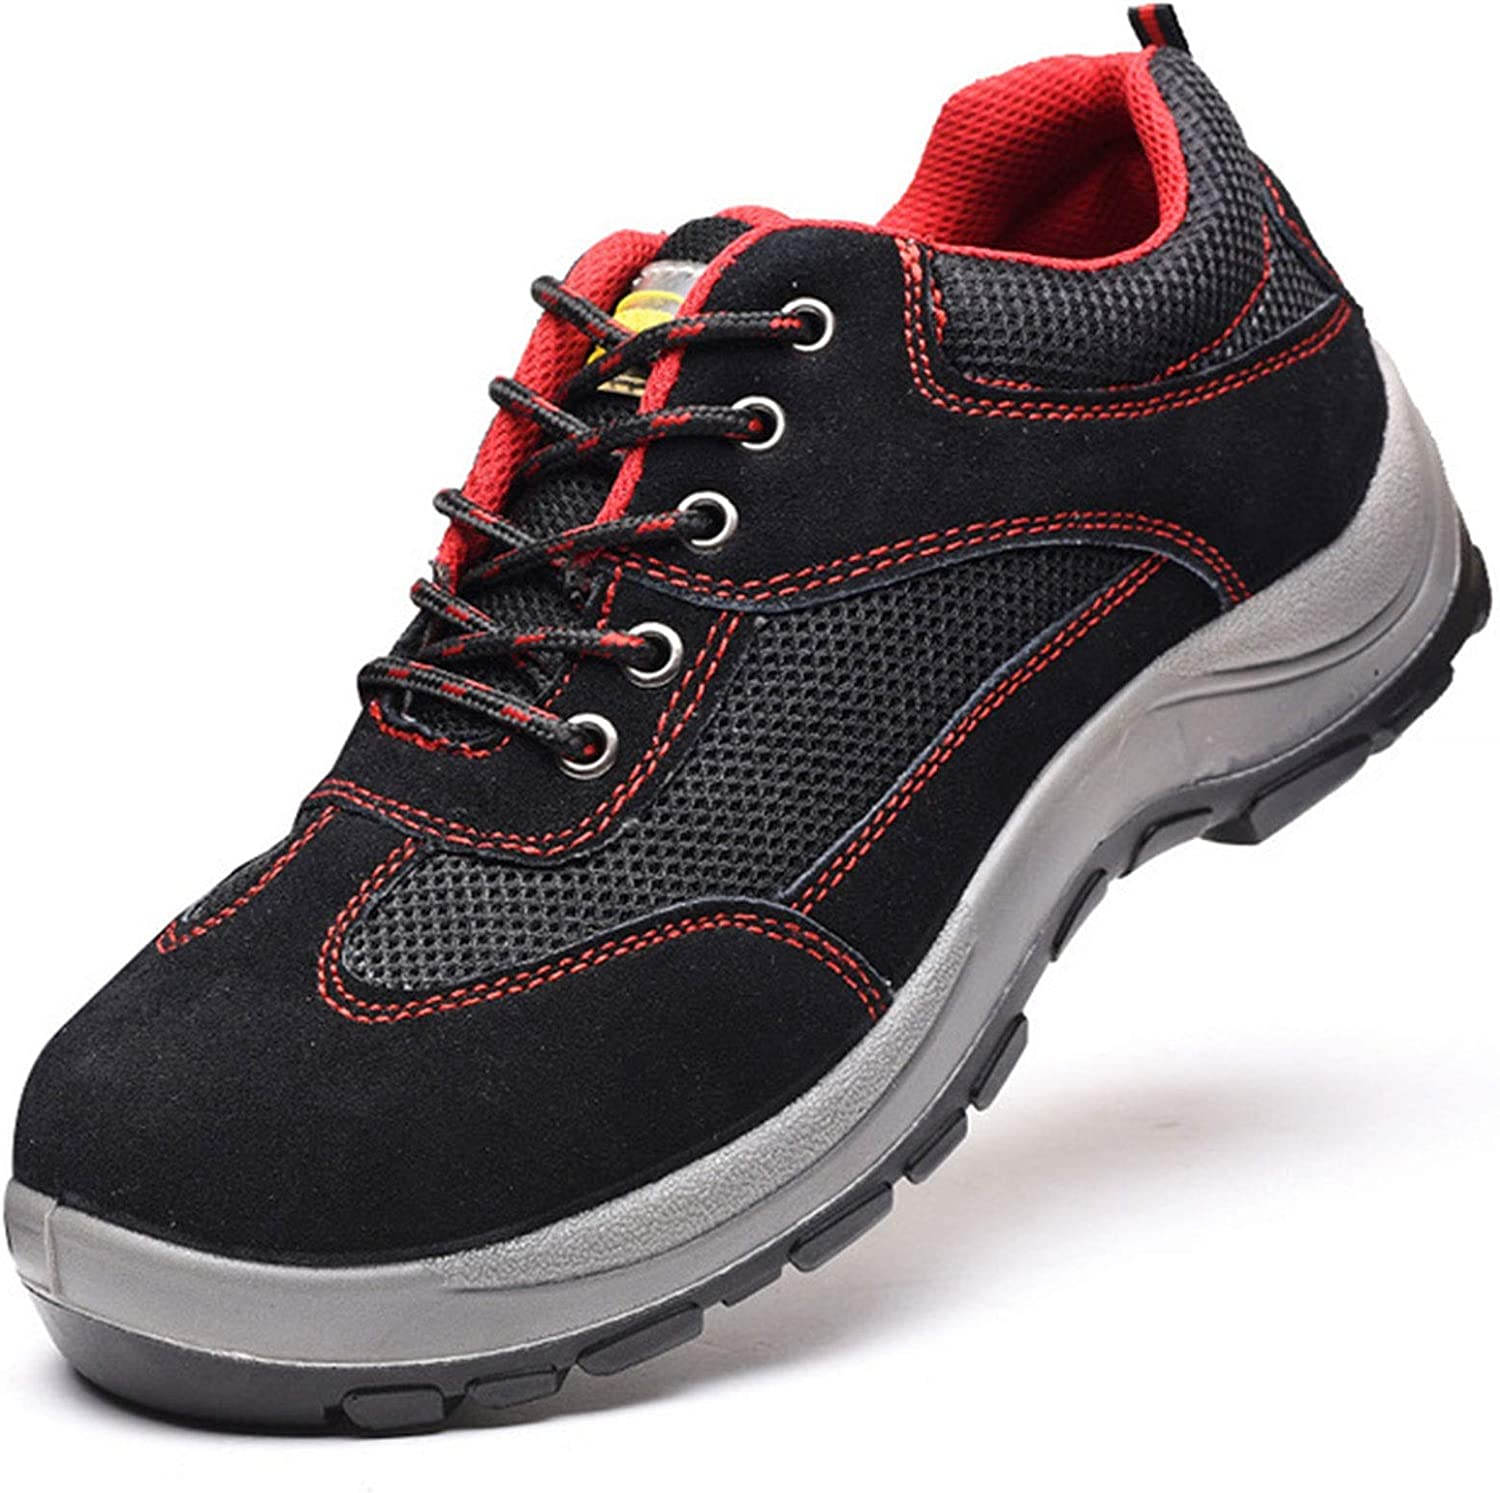 Safety Shoes for Men Women Arlington Mall Steel Toe Cap Pu Max 49% OFF Lightweight Trainers